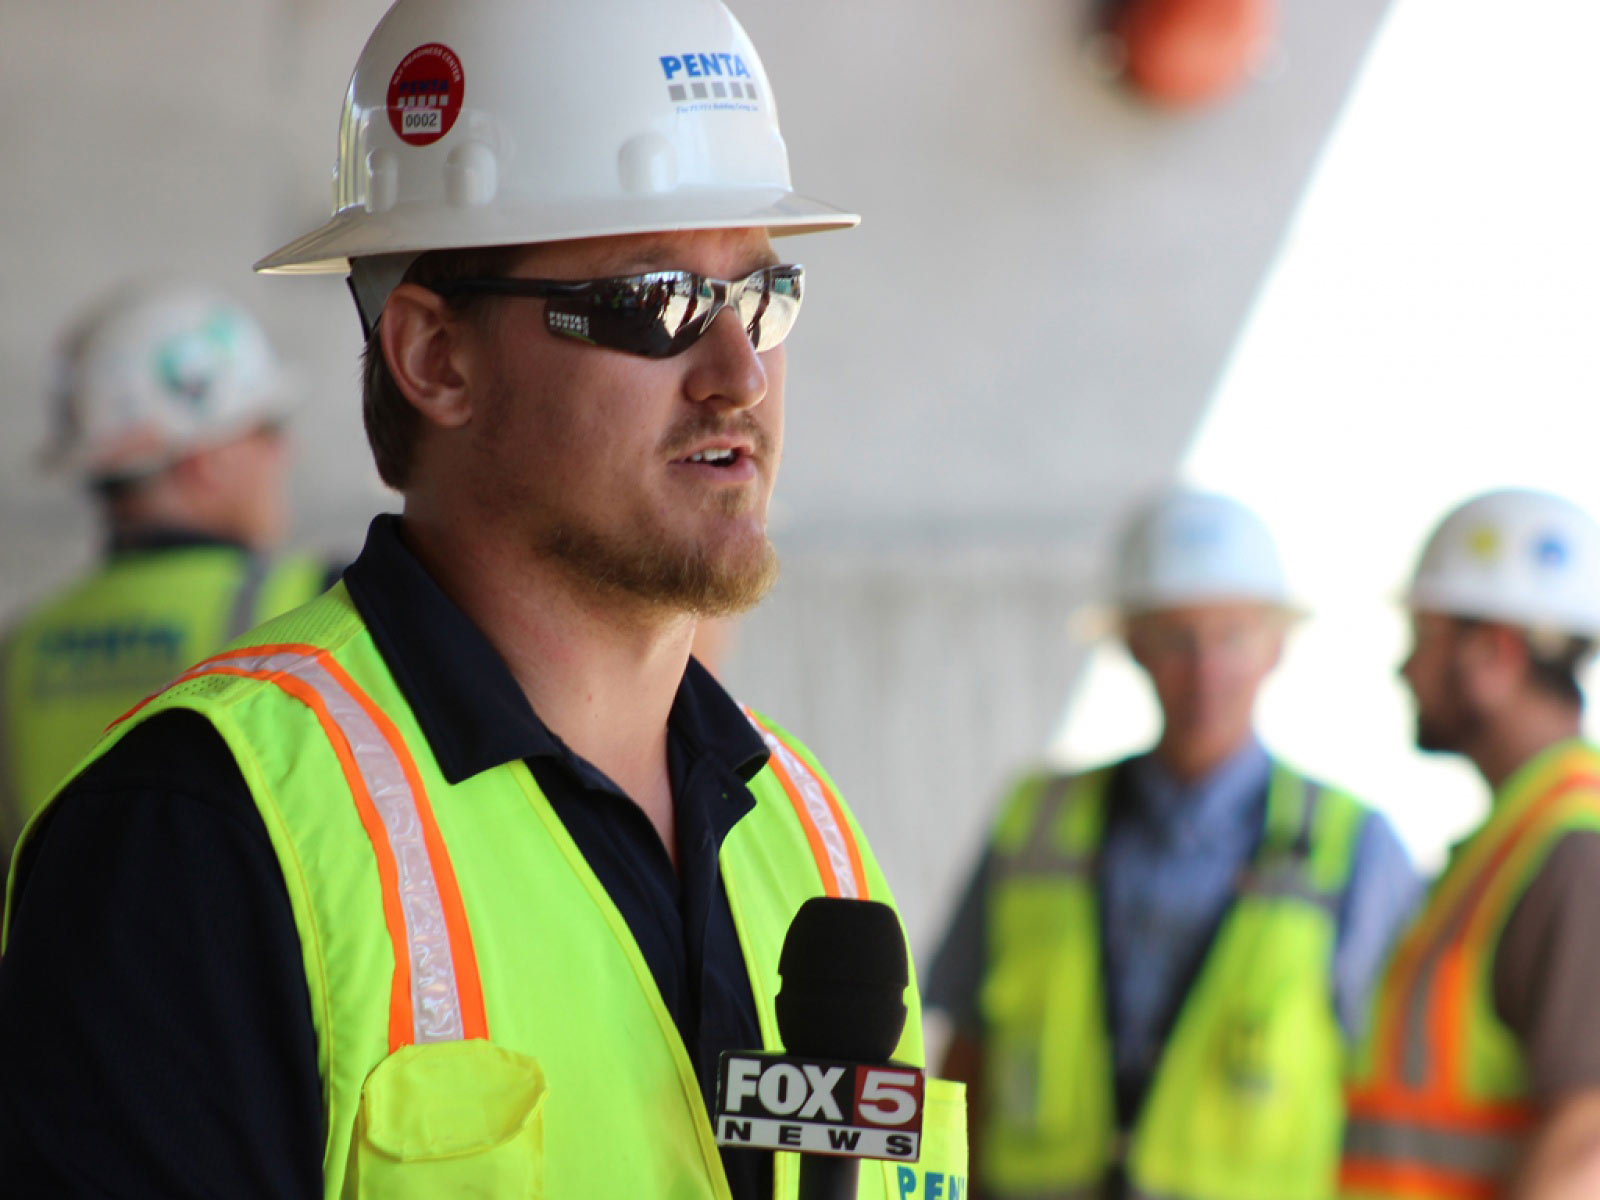 FOX5 News Interviews PENTA's Paul Dutmer, Lucky Dragon Project Manager